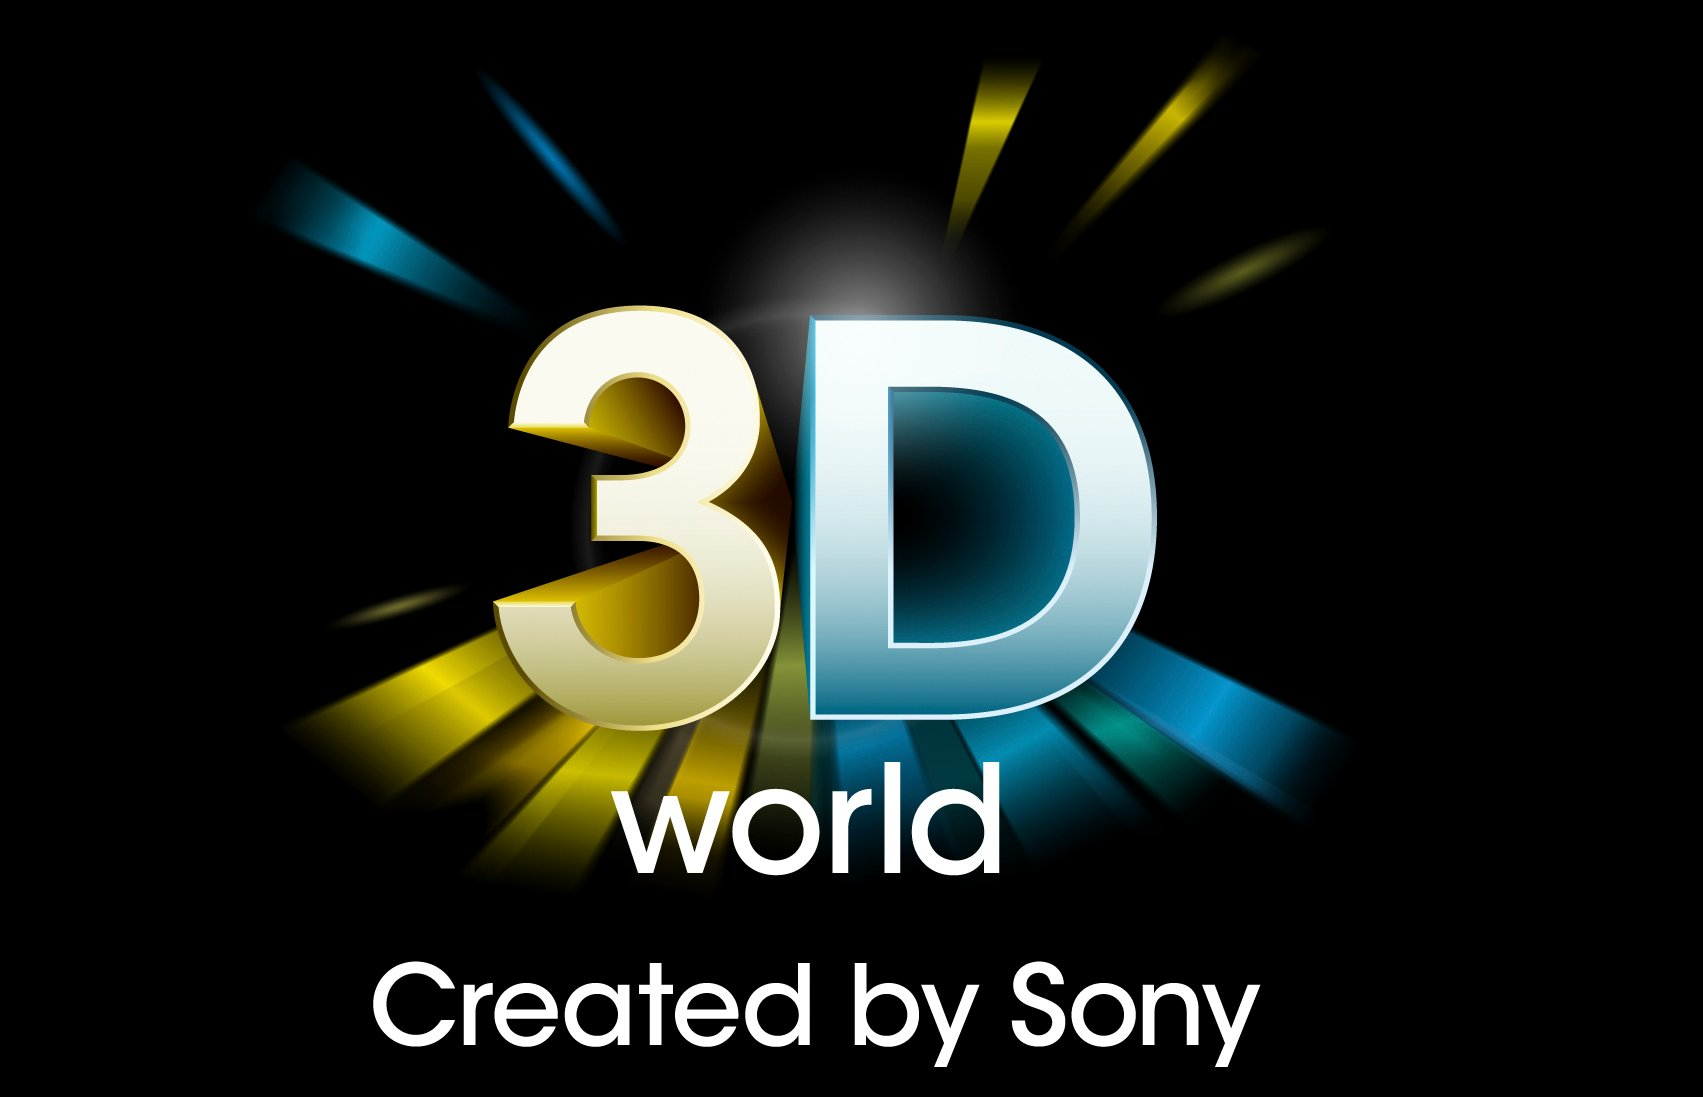 file_6778_LOGO-3D-WORLD1